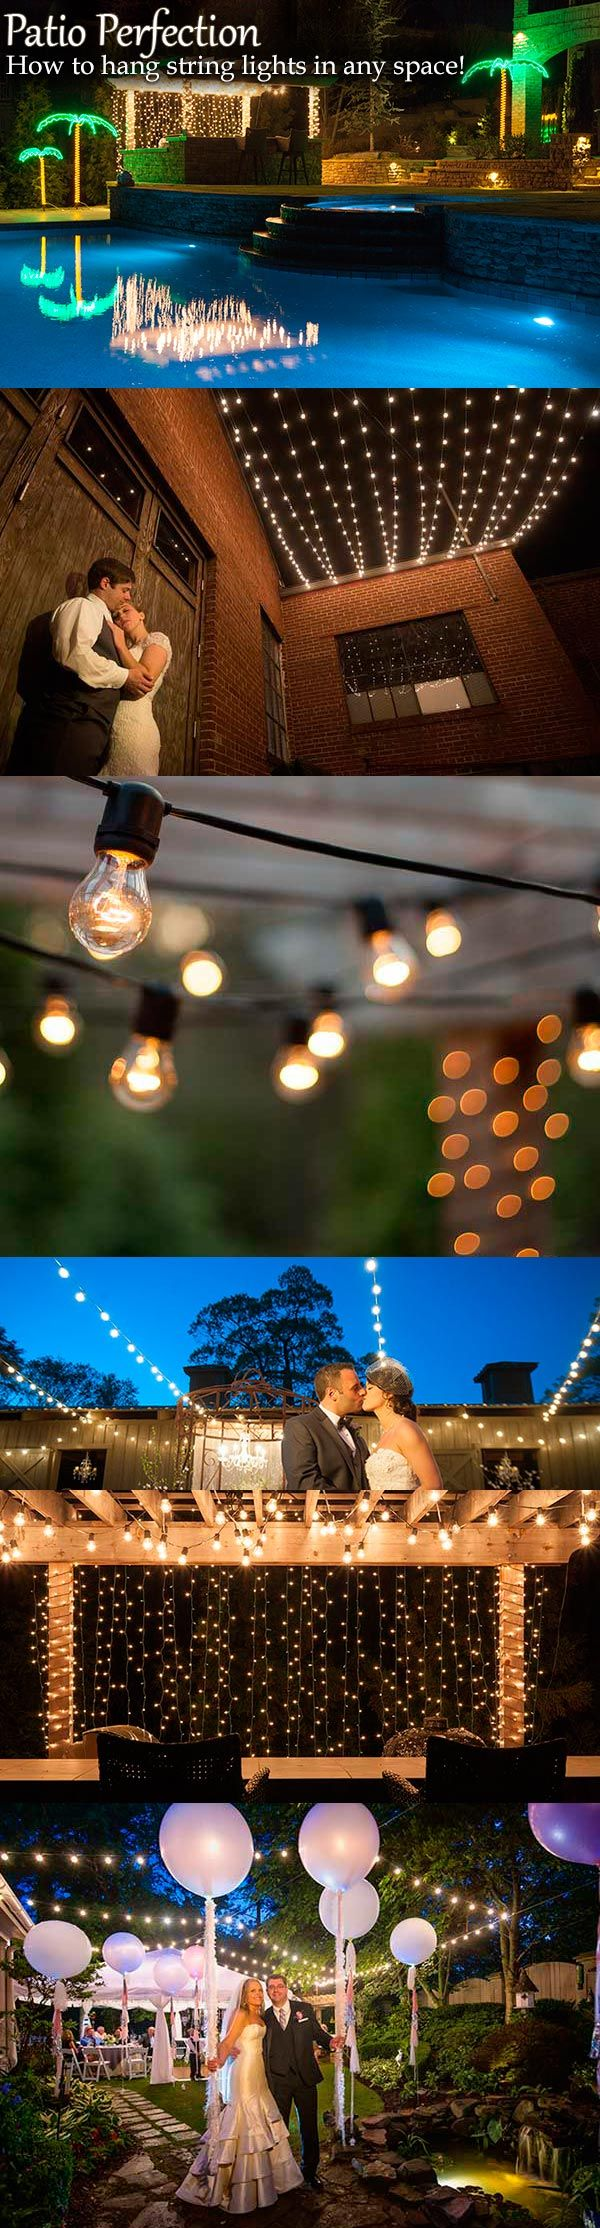 251 Best Images About Spring Wedding Ideas On Pinterest